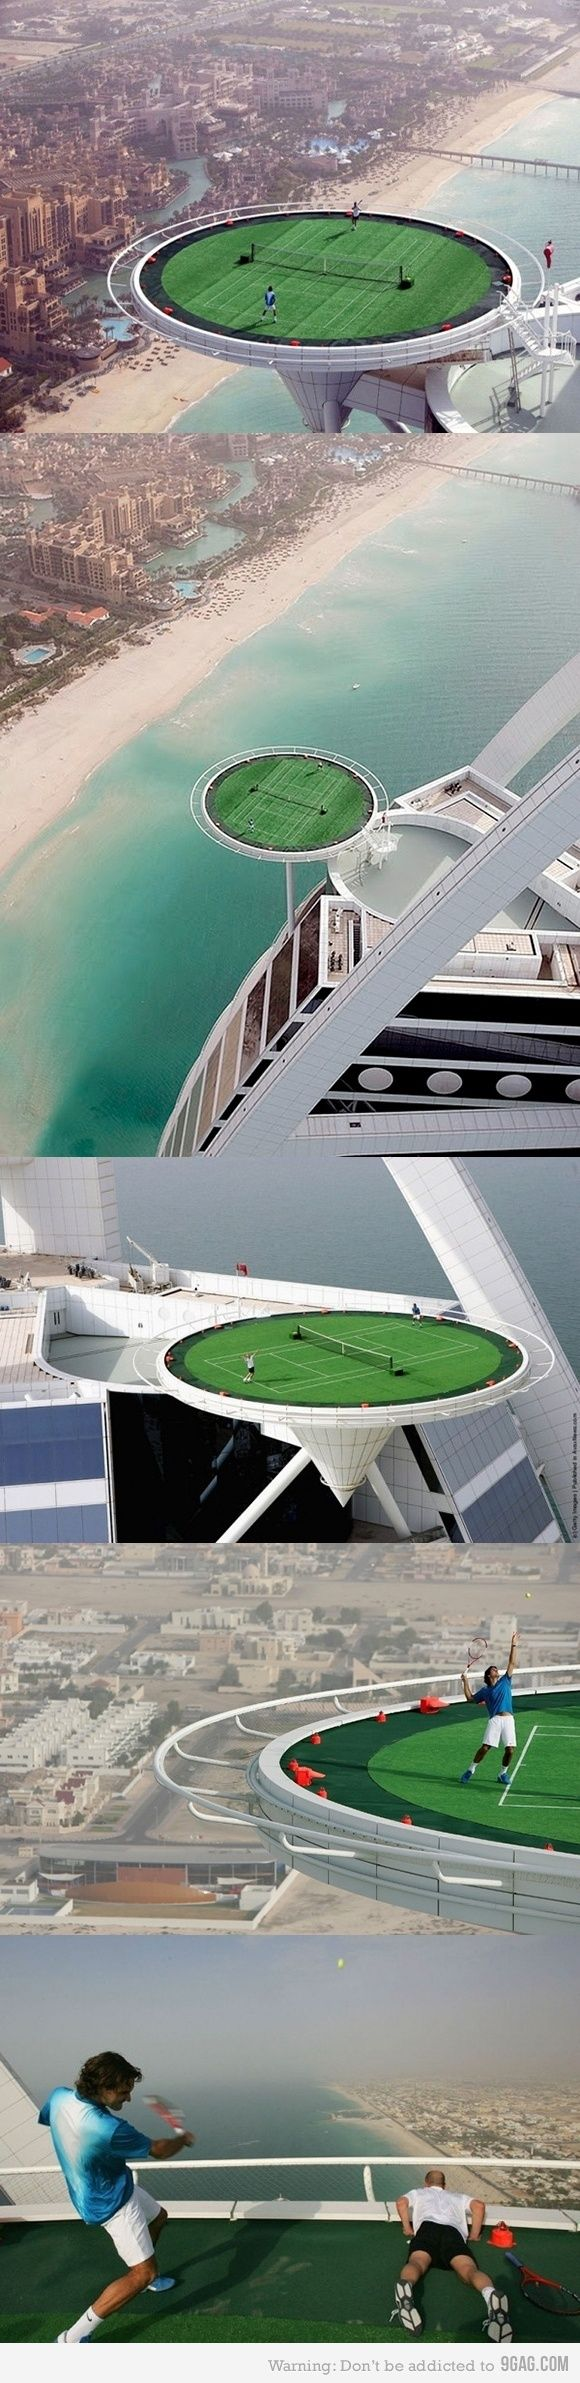 What?! Is this for real???  No thanks, my fear of heights trumps my love of tennis.